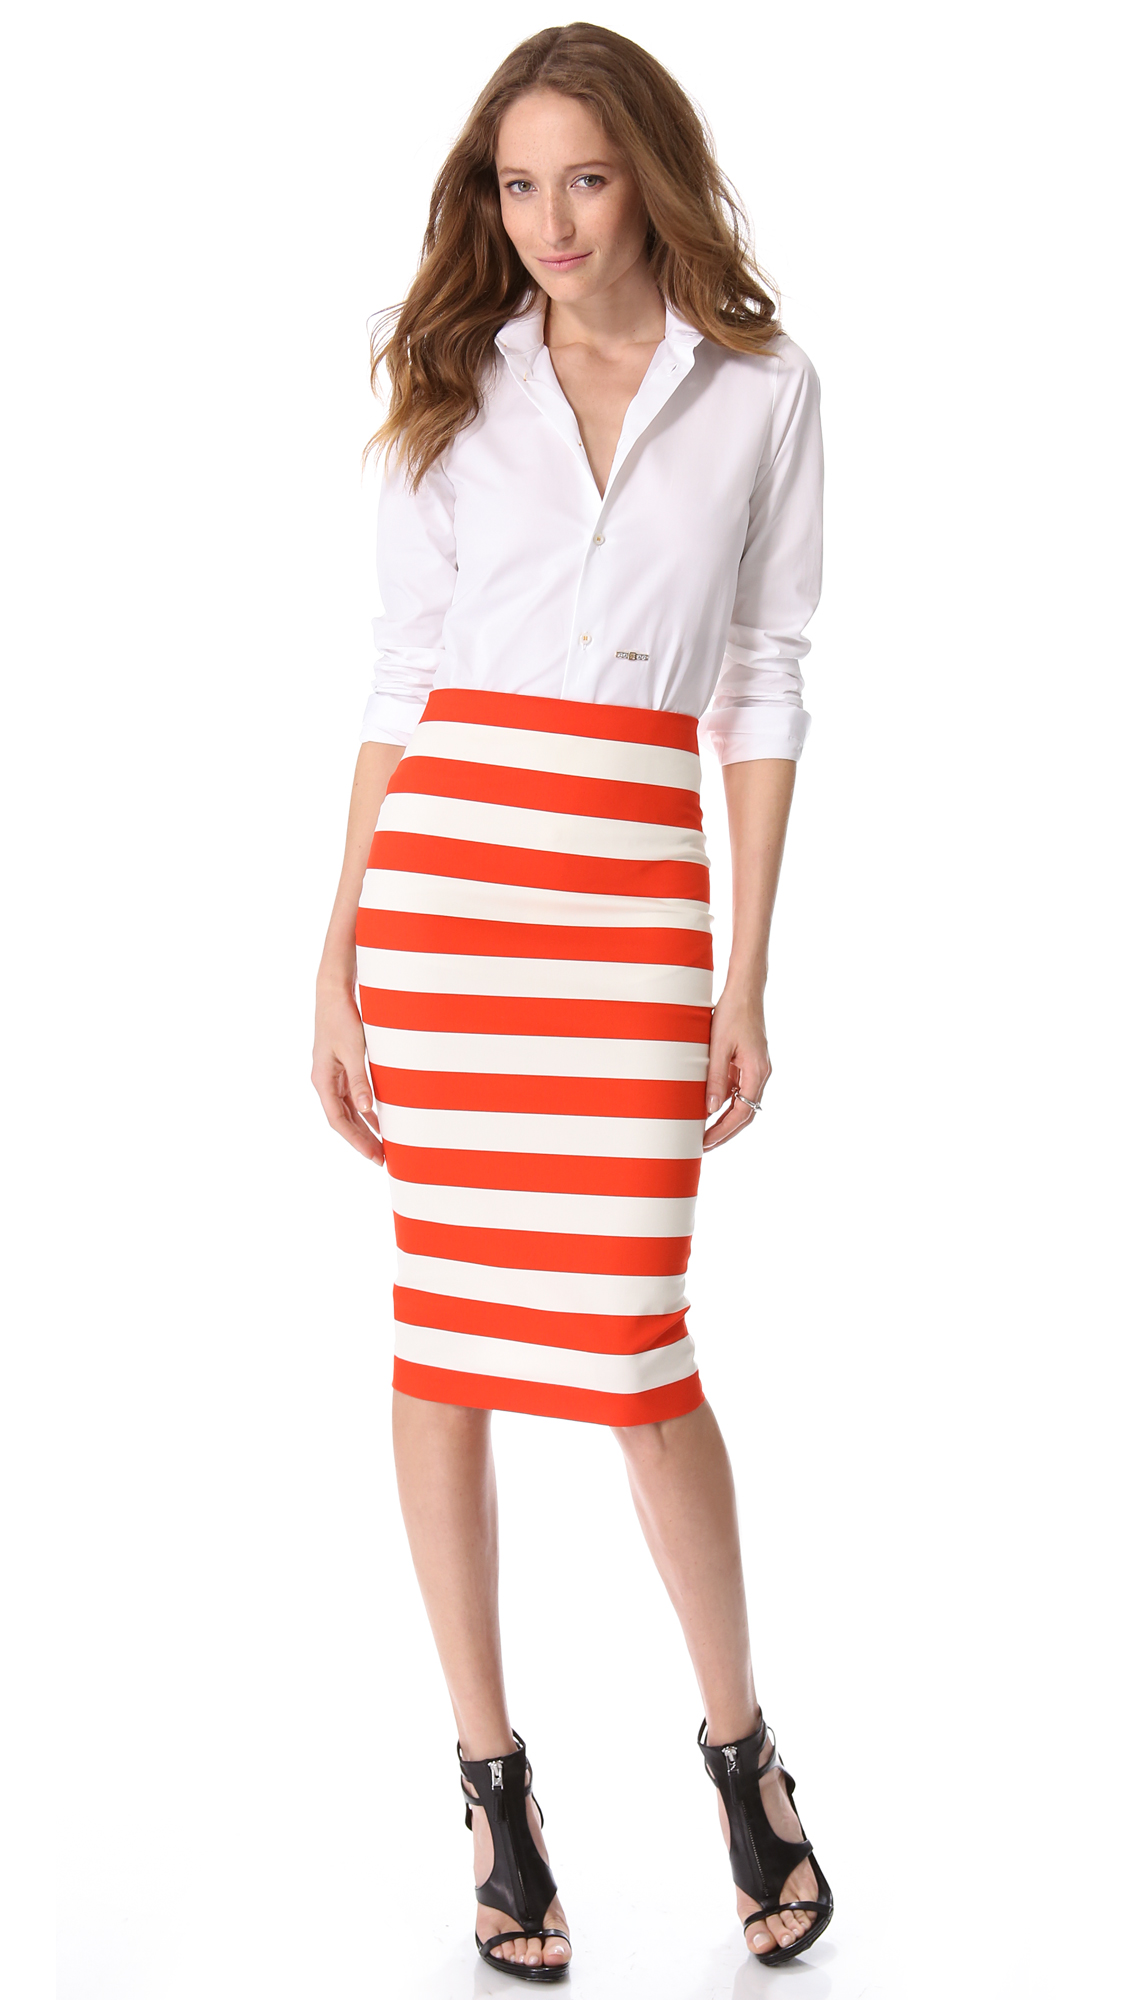 Robert rodriguez Graphic Stripe Pencil Skirt in White | Lyst